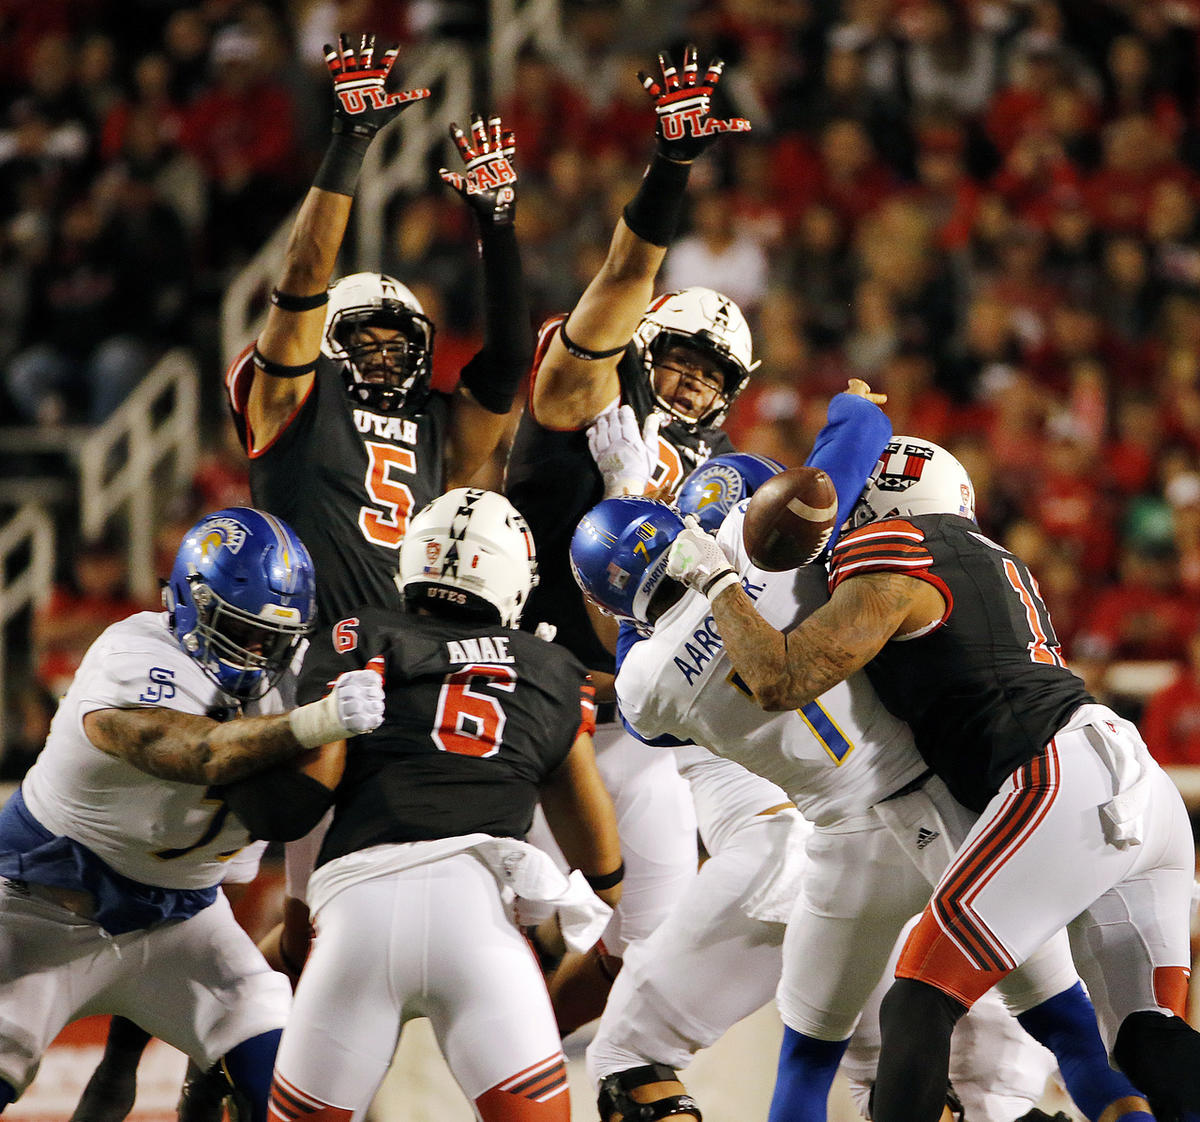 Utah slams San Jose State 54-16 to cap non-conference play